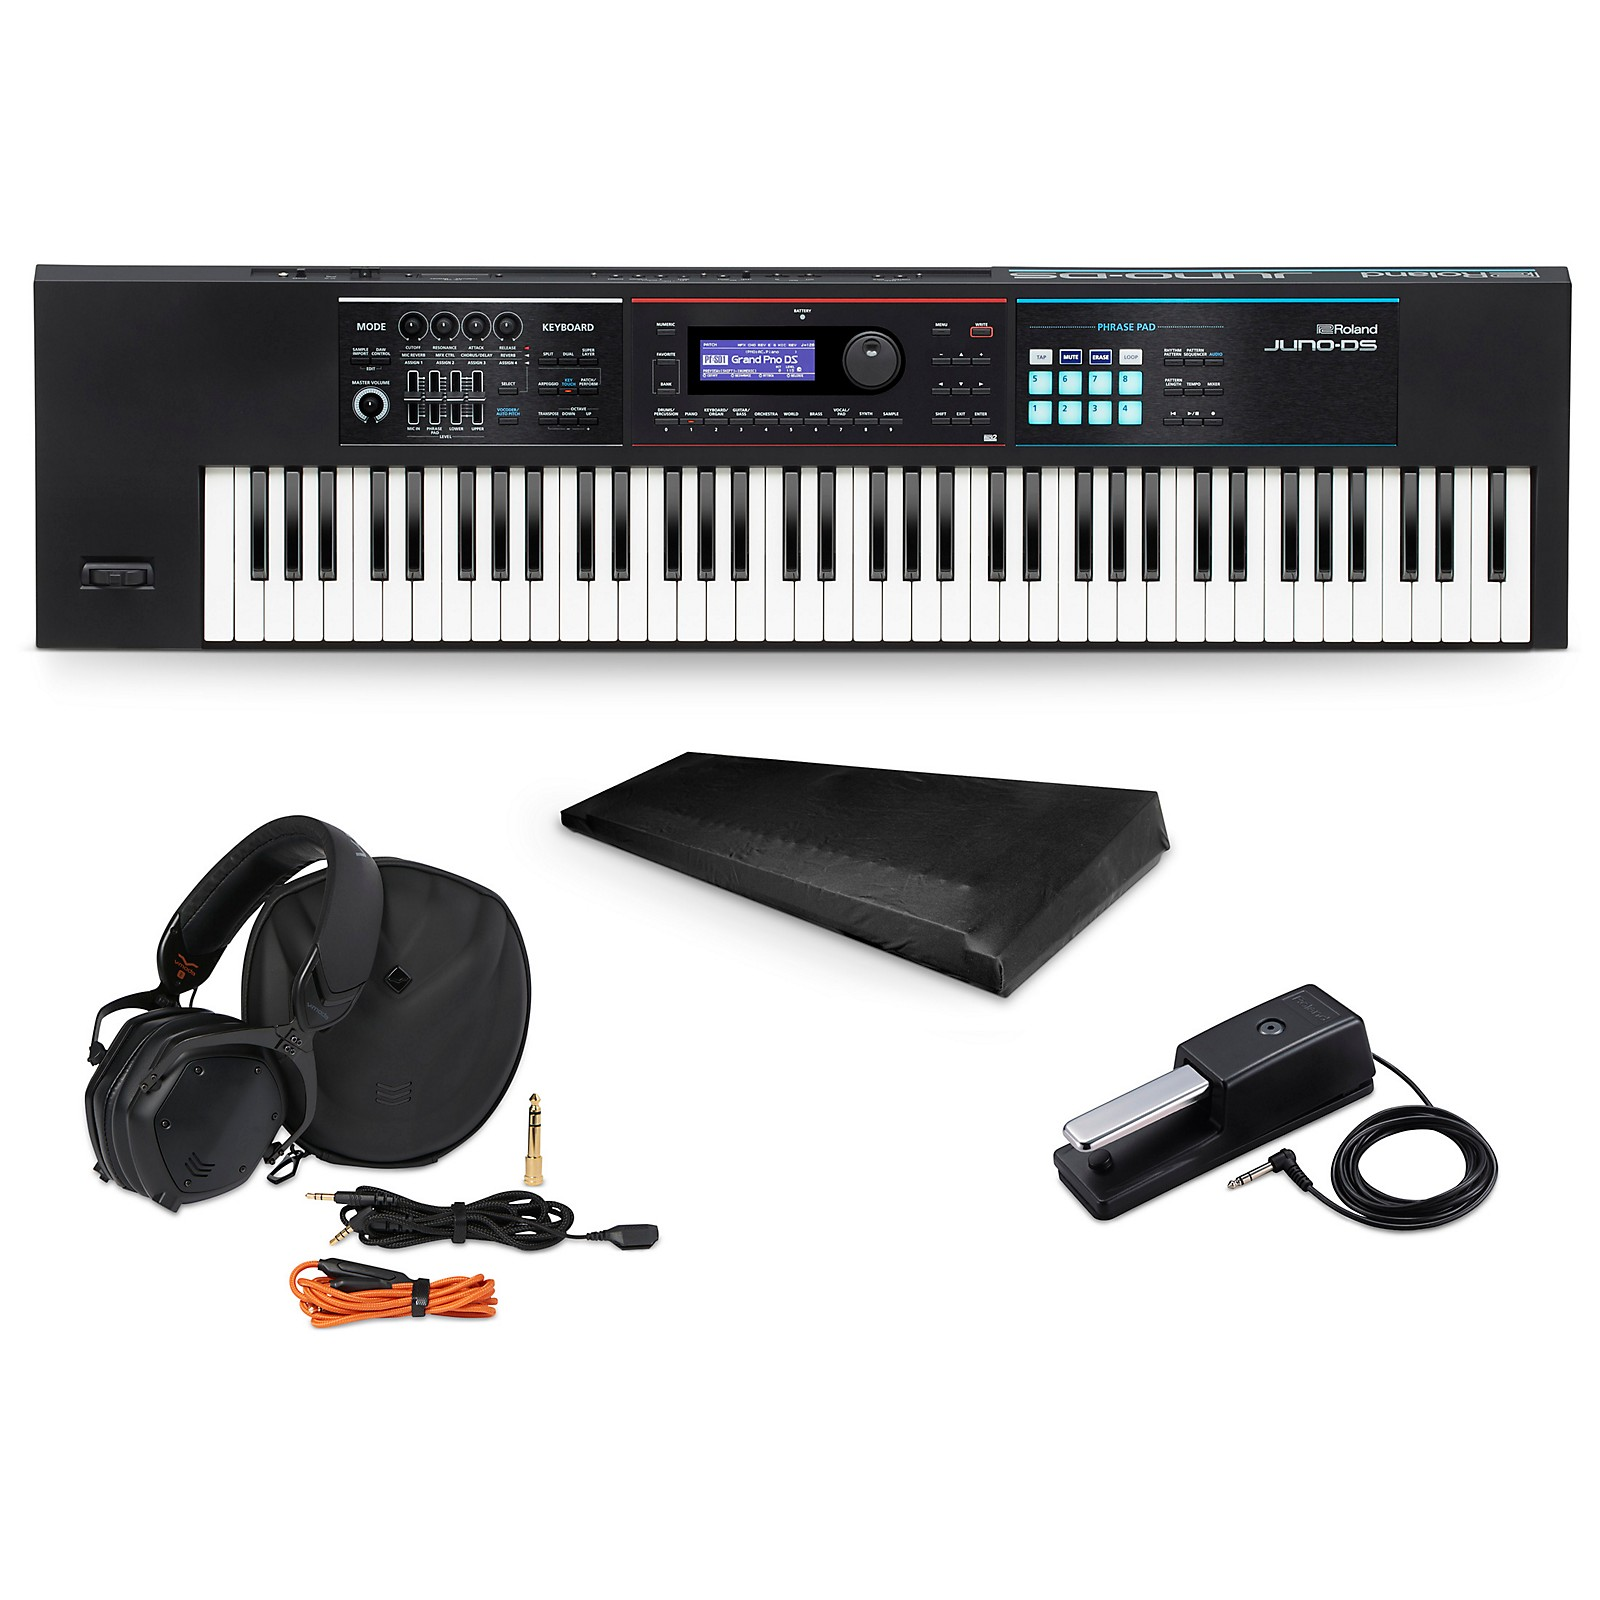 Roland JUNO-DS76 Synthesizer Essentials Package